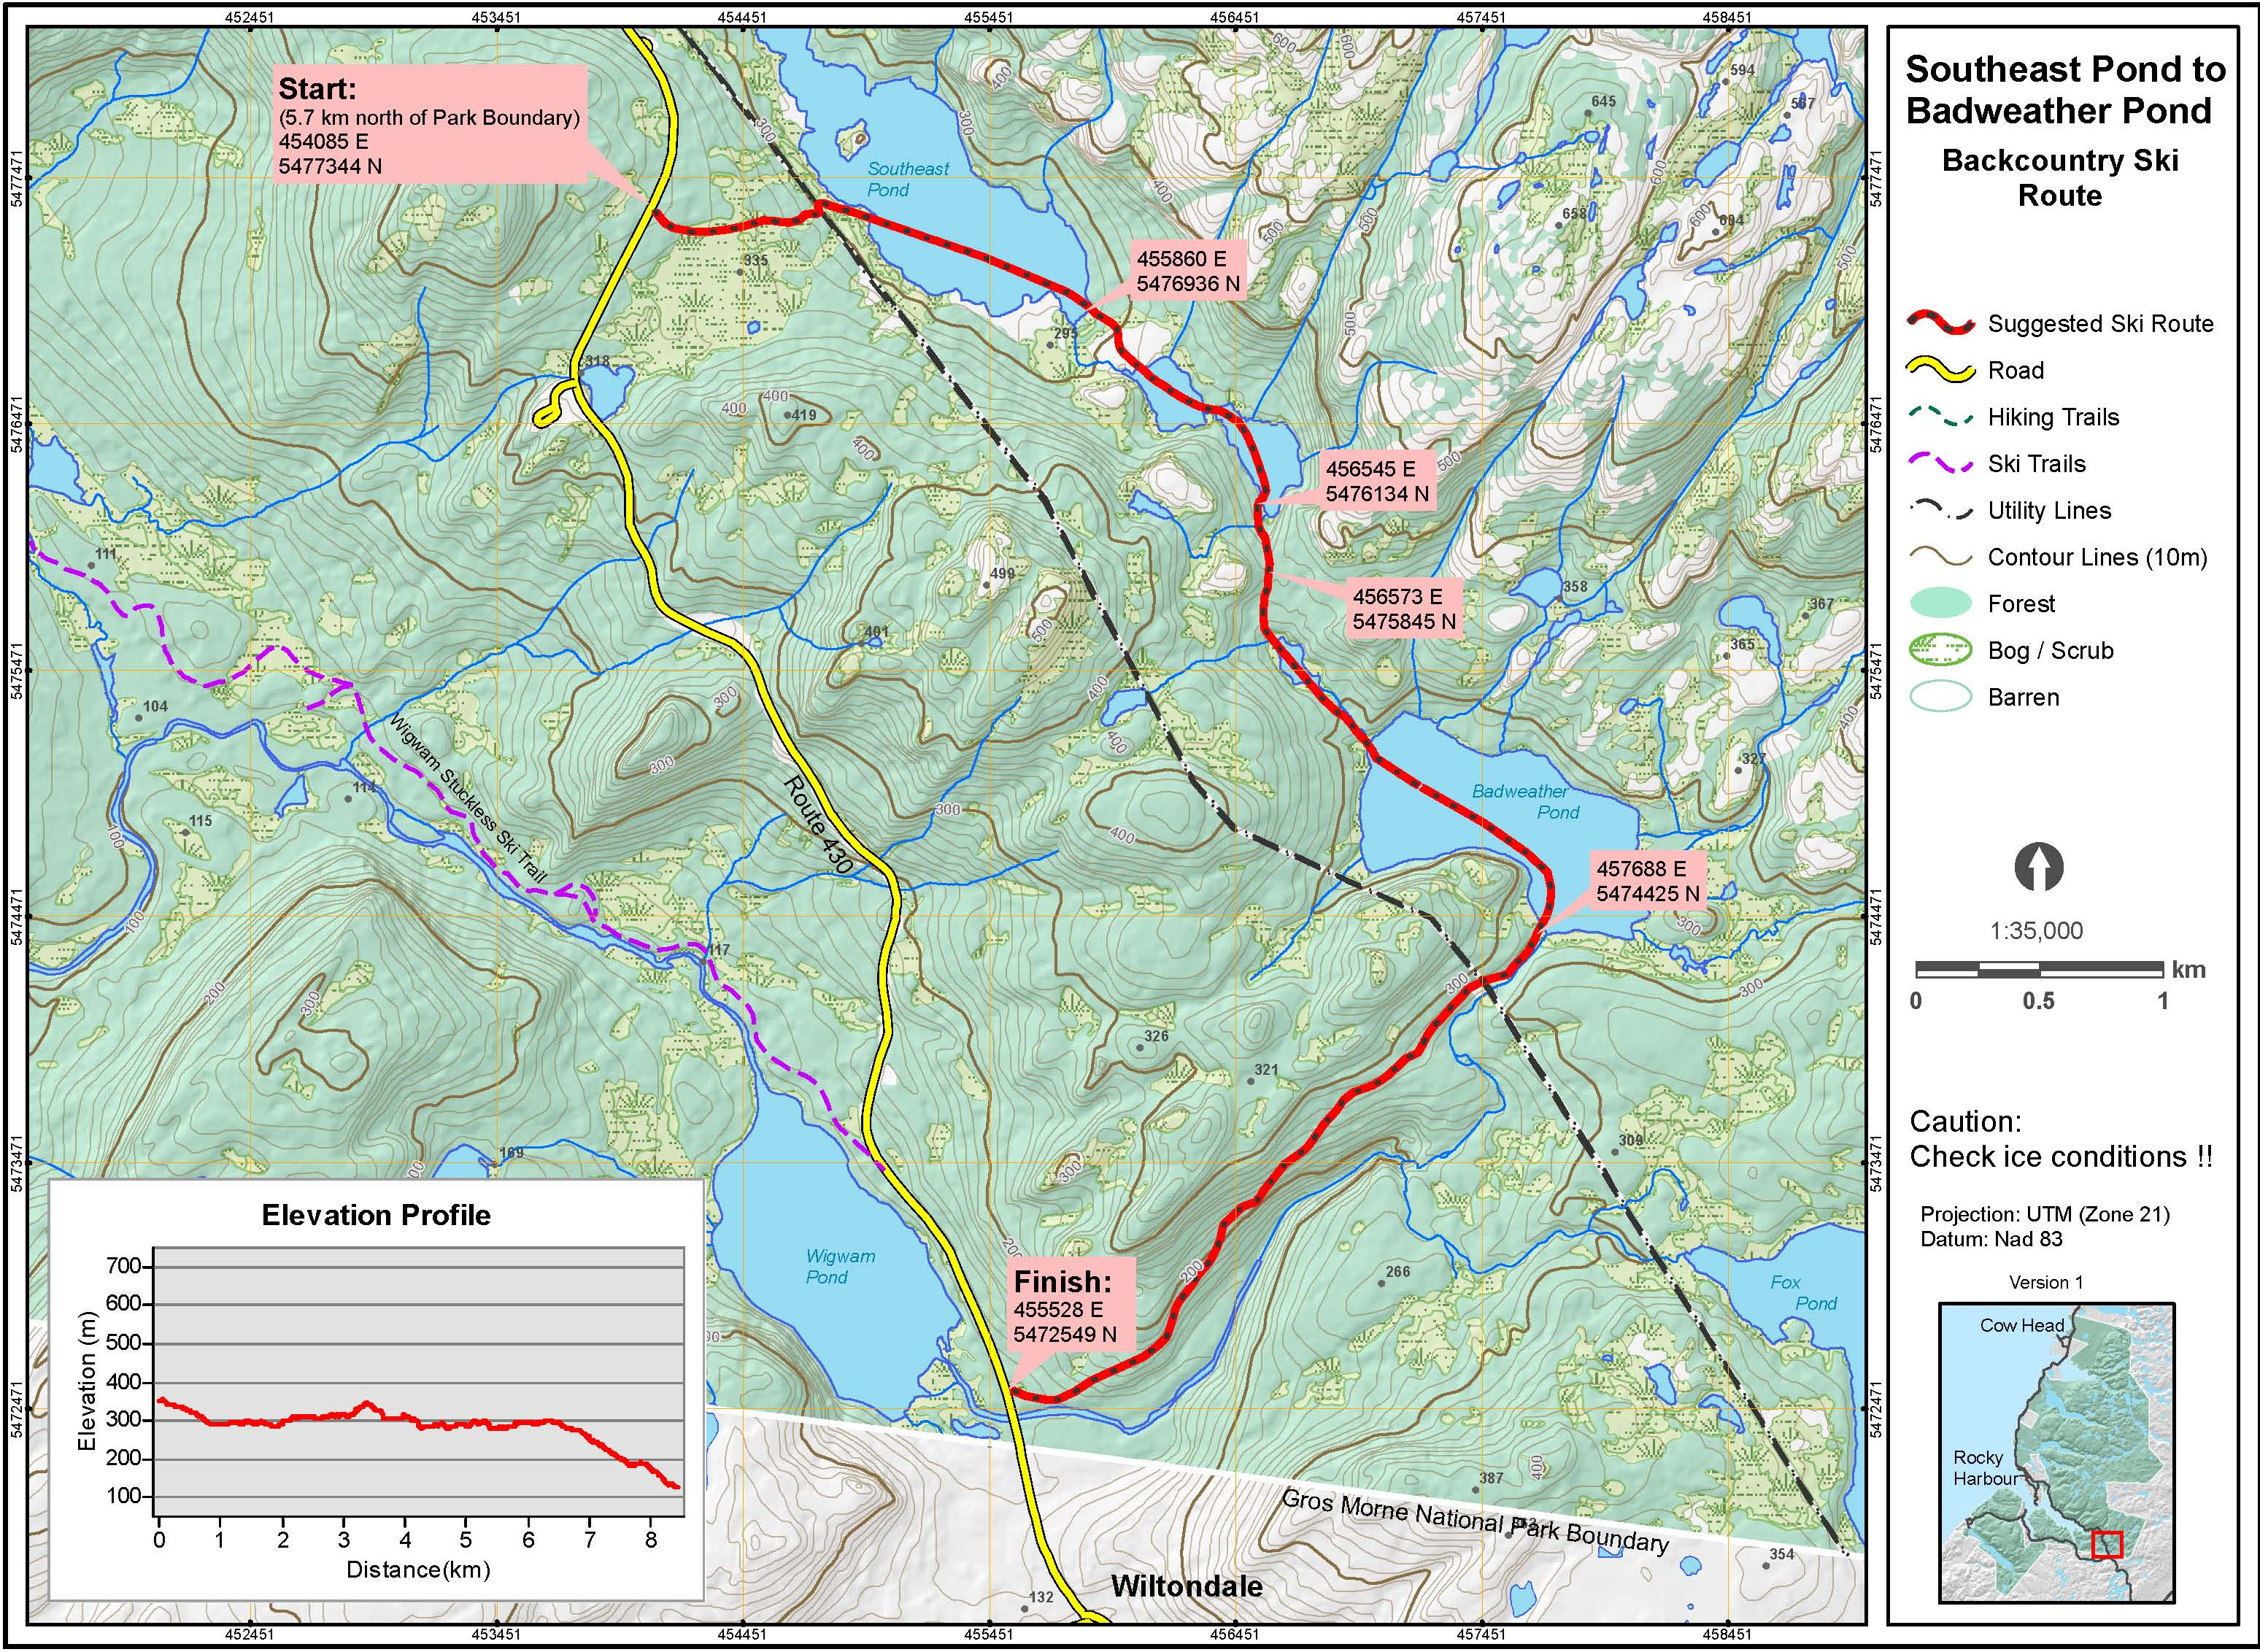 Badweather Pond to Southeast Pond map